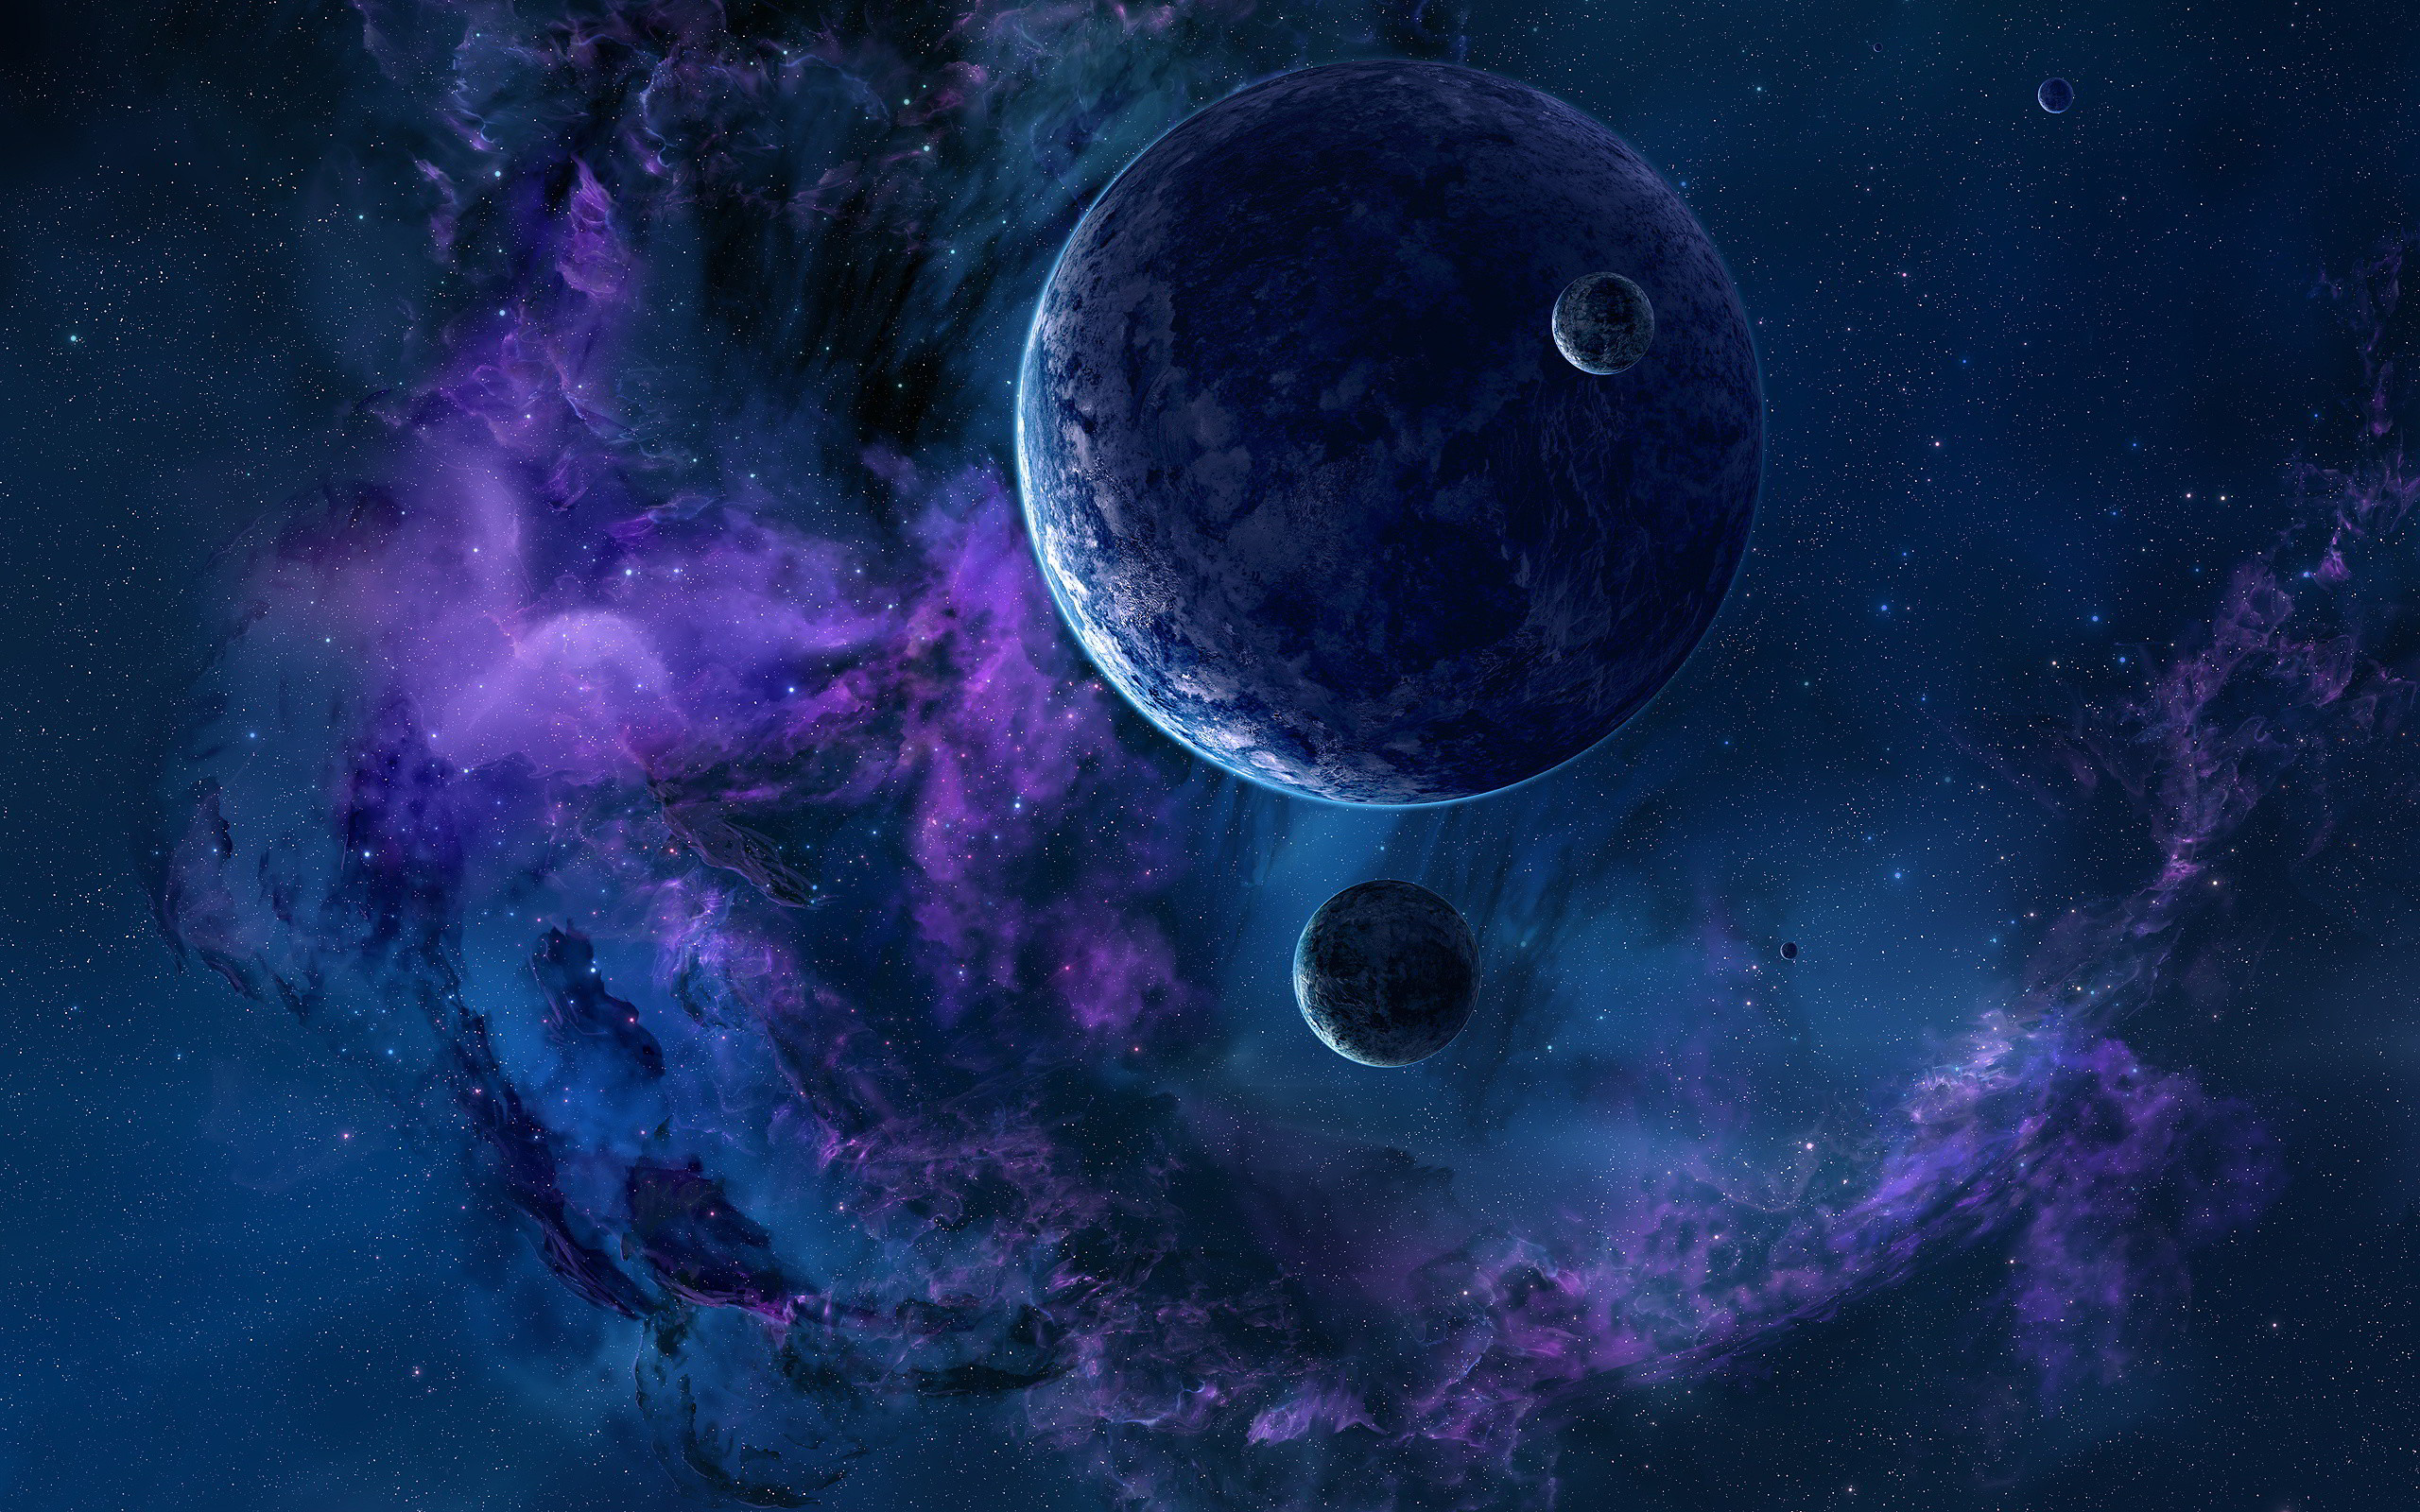 Space Stars And Planets Wallpaper